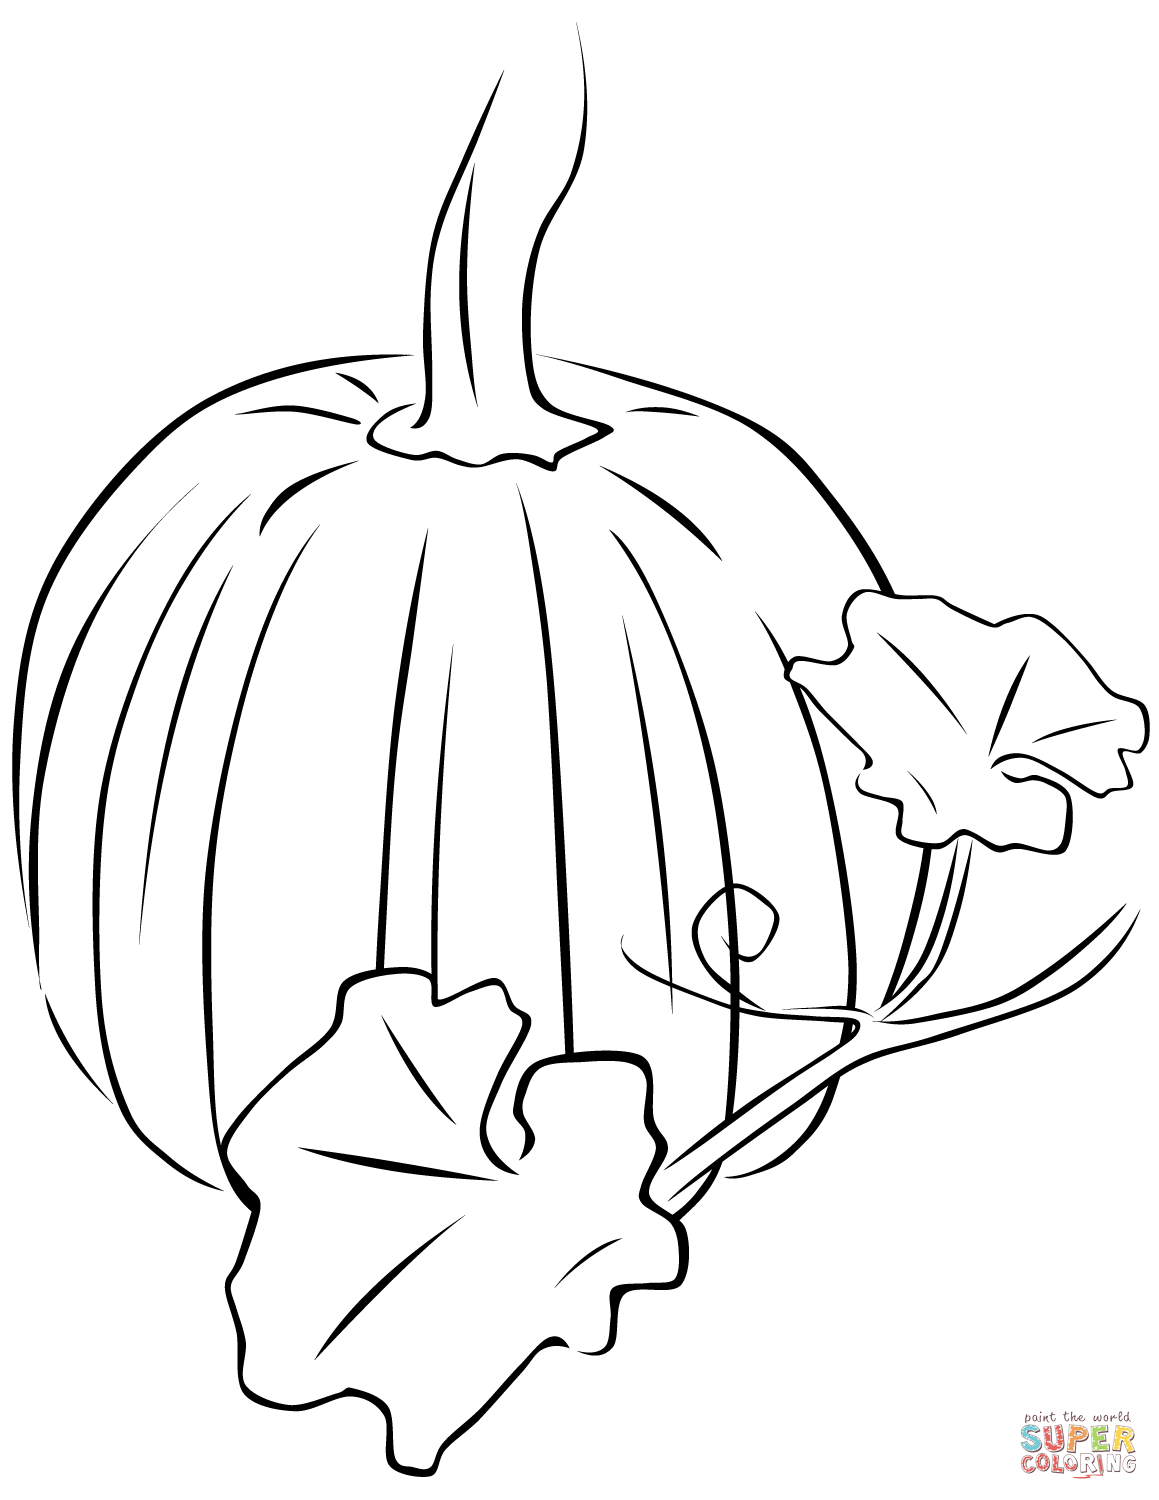 pumpkin and leaves coloring pages pumpkin with leaves coloring page free printable pumpkin leaves and pages coloring